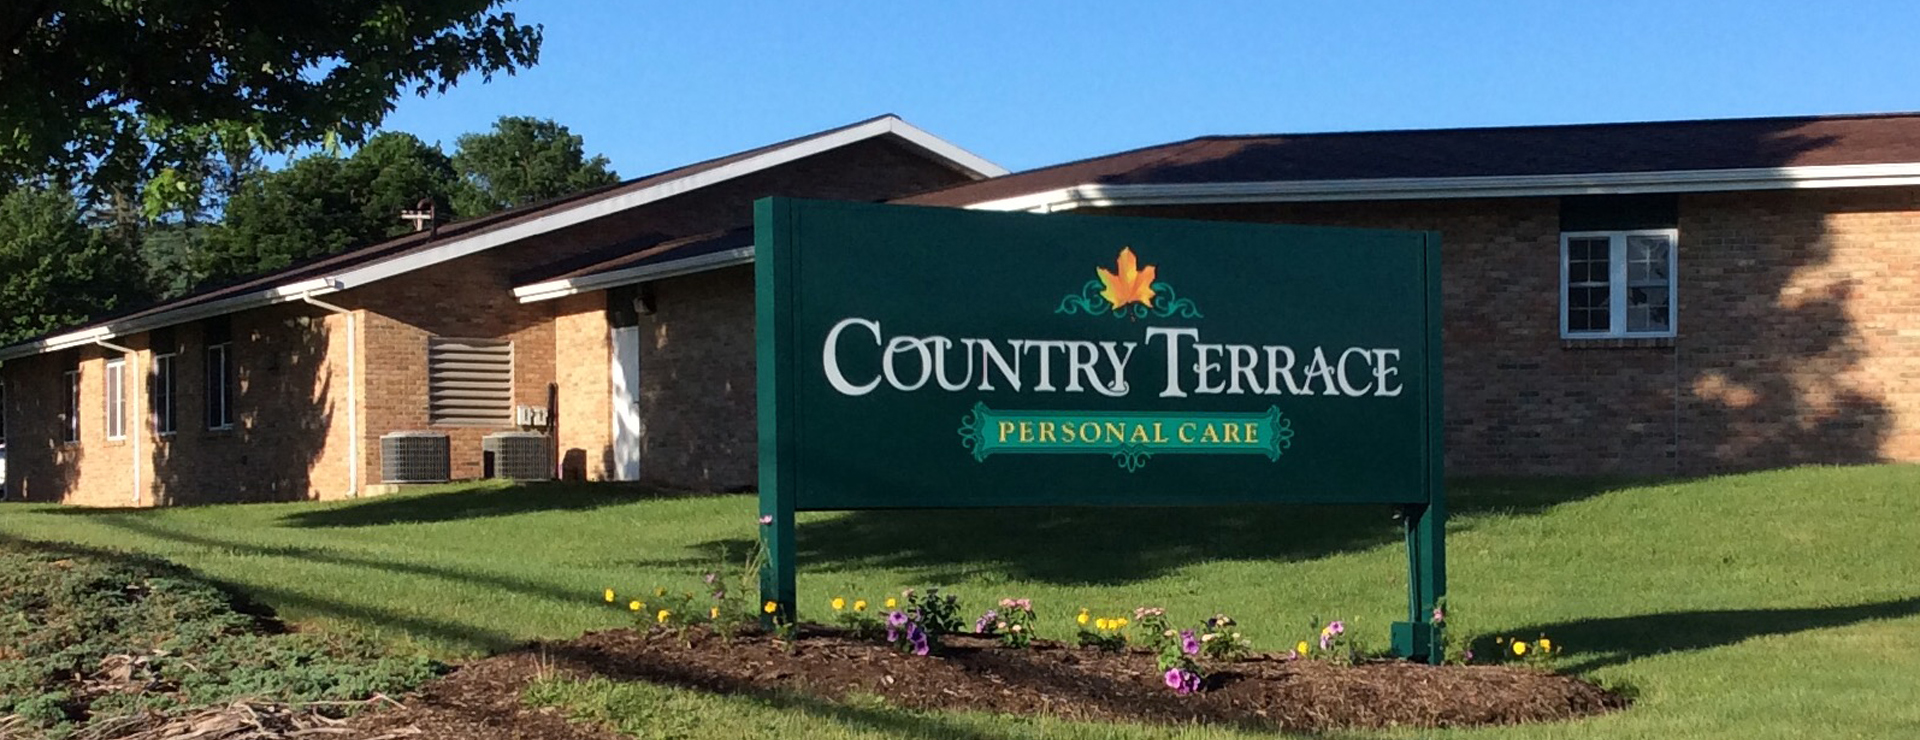 Welcome to Country Terrace